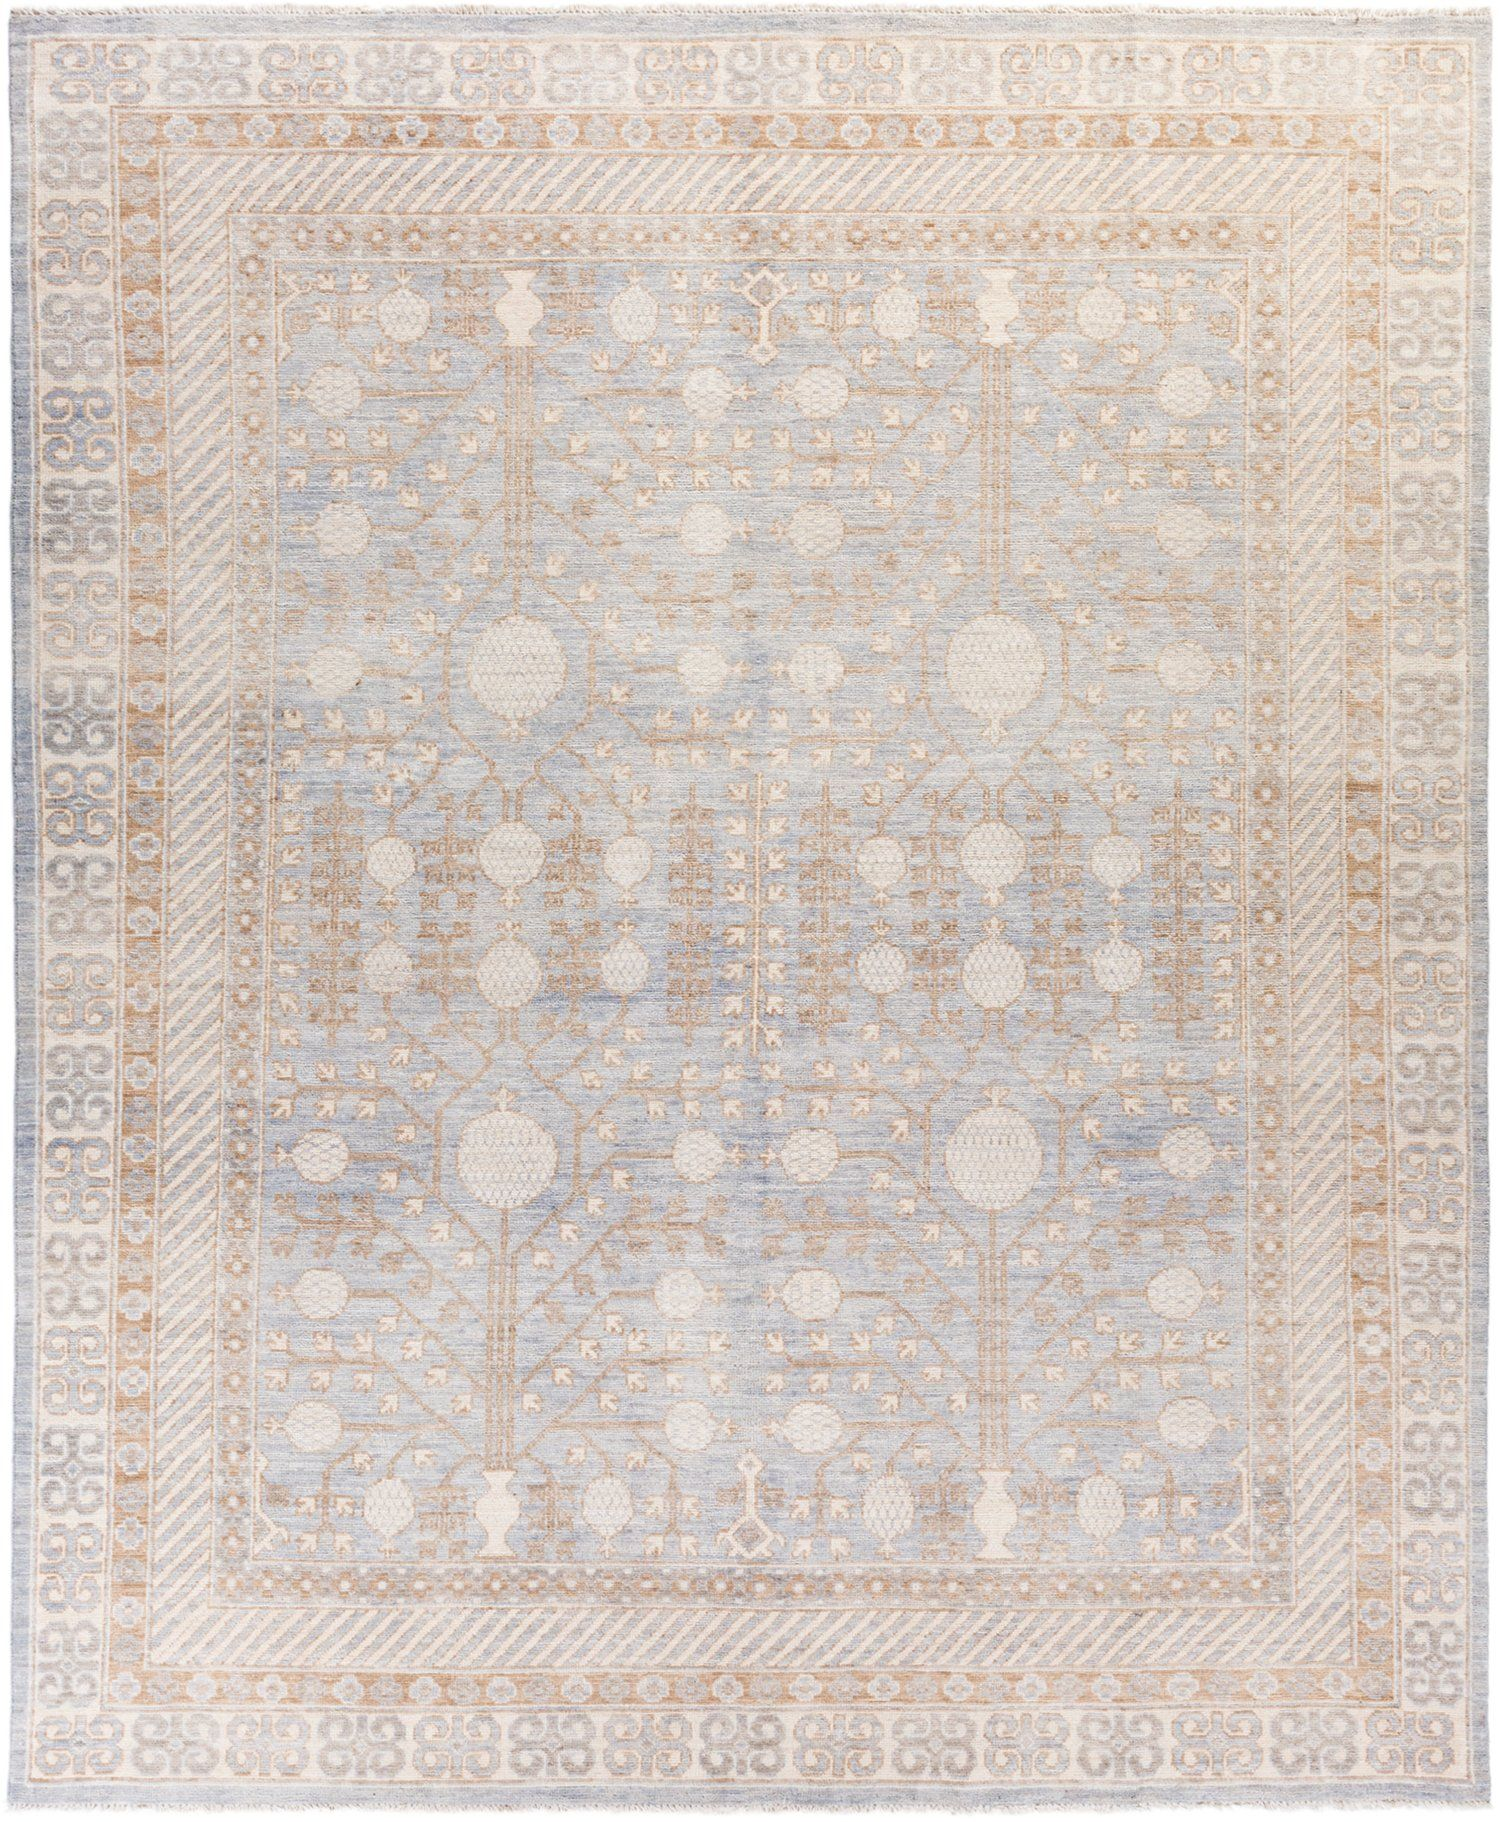 Khotan Hand Knotted Area Rug 8 5 X 10 2 Solo Rugs Area Rug Design Area Rugs Purple Area Rugs 5 x 10 area rugs